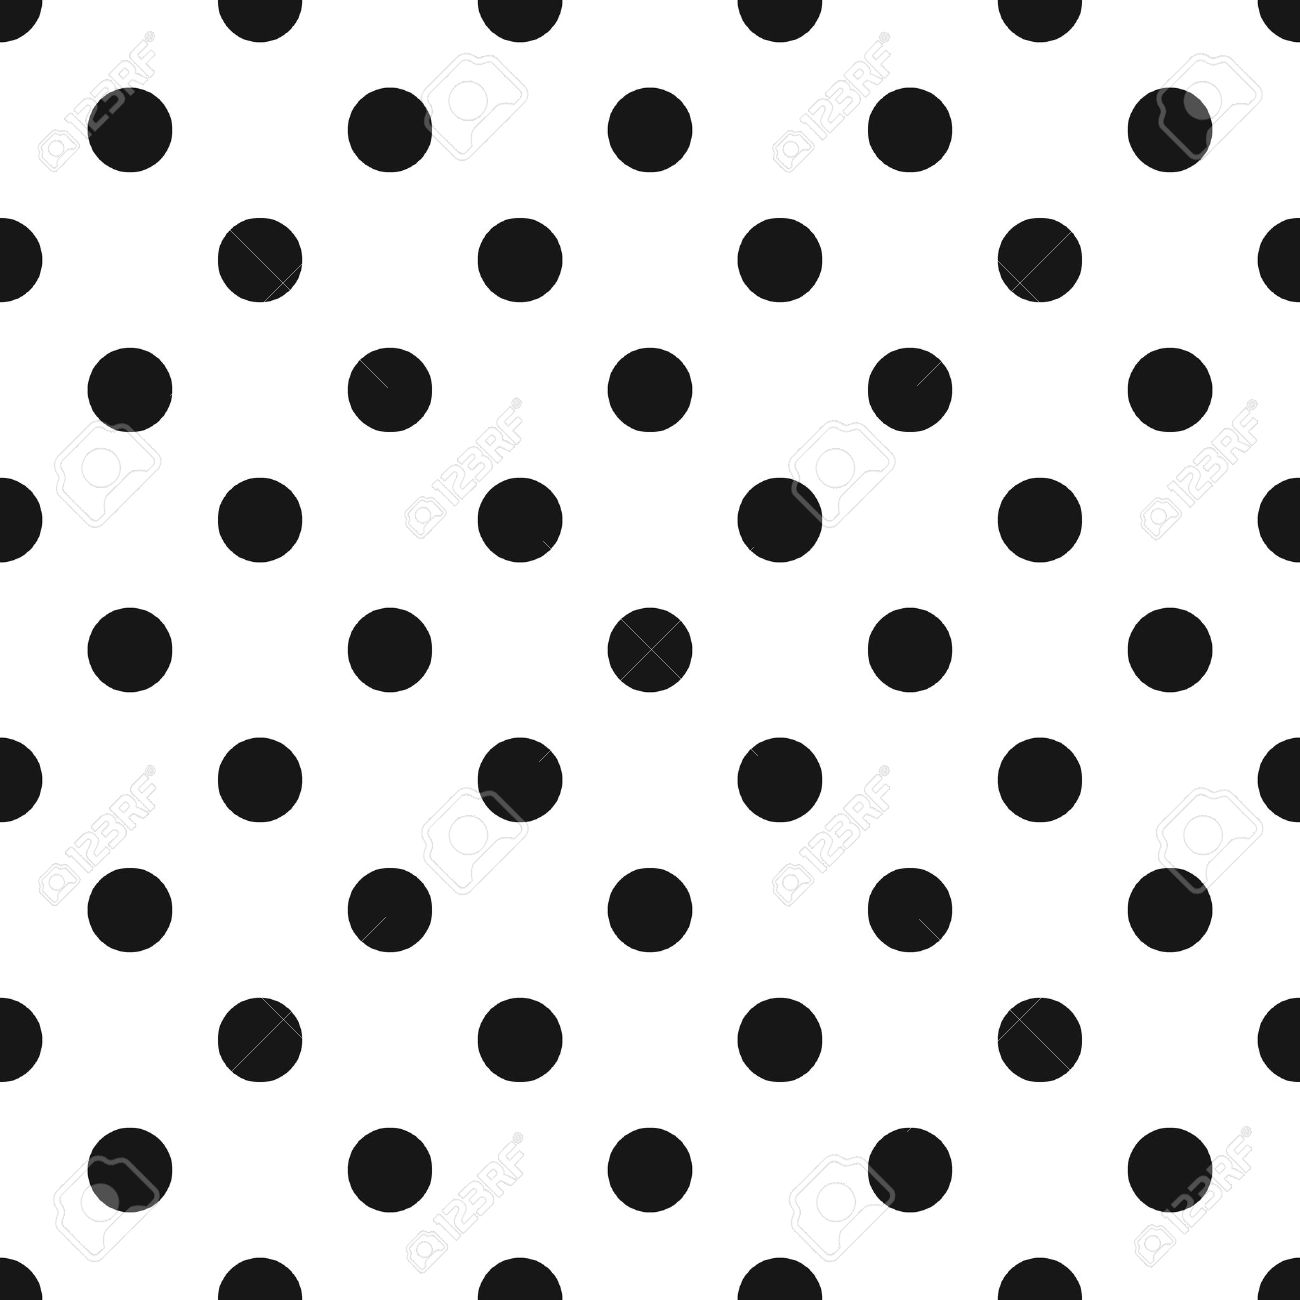 Black And White Polka Dot Seamless Pattern. Classic Abstract ...